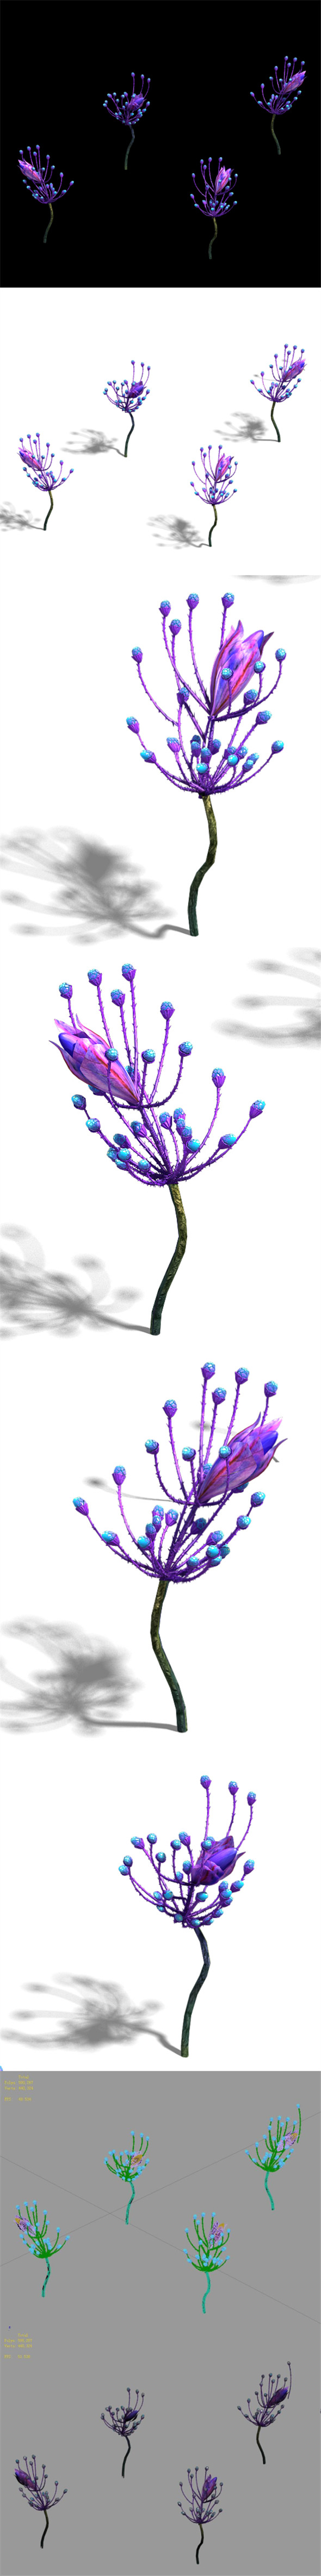 Wizard of the forest - supernatural flowers 02 - 3DOcean Item for Sale